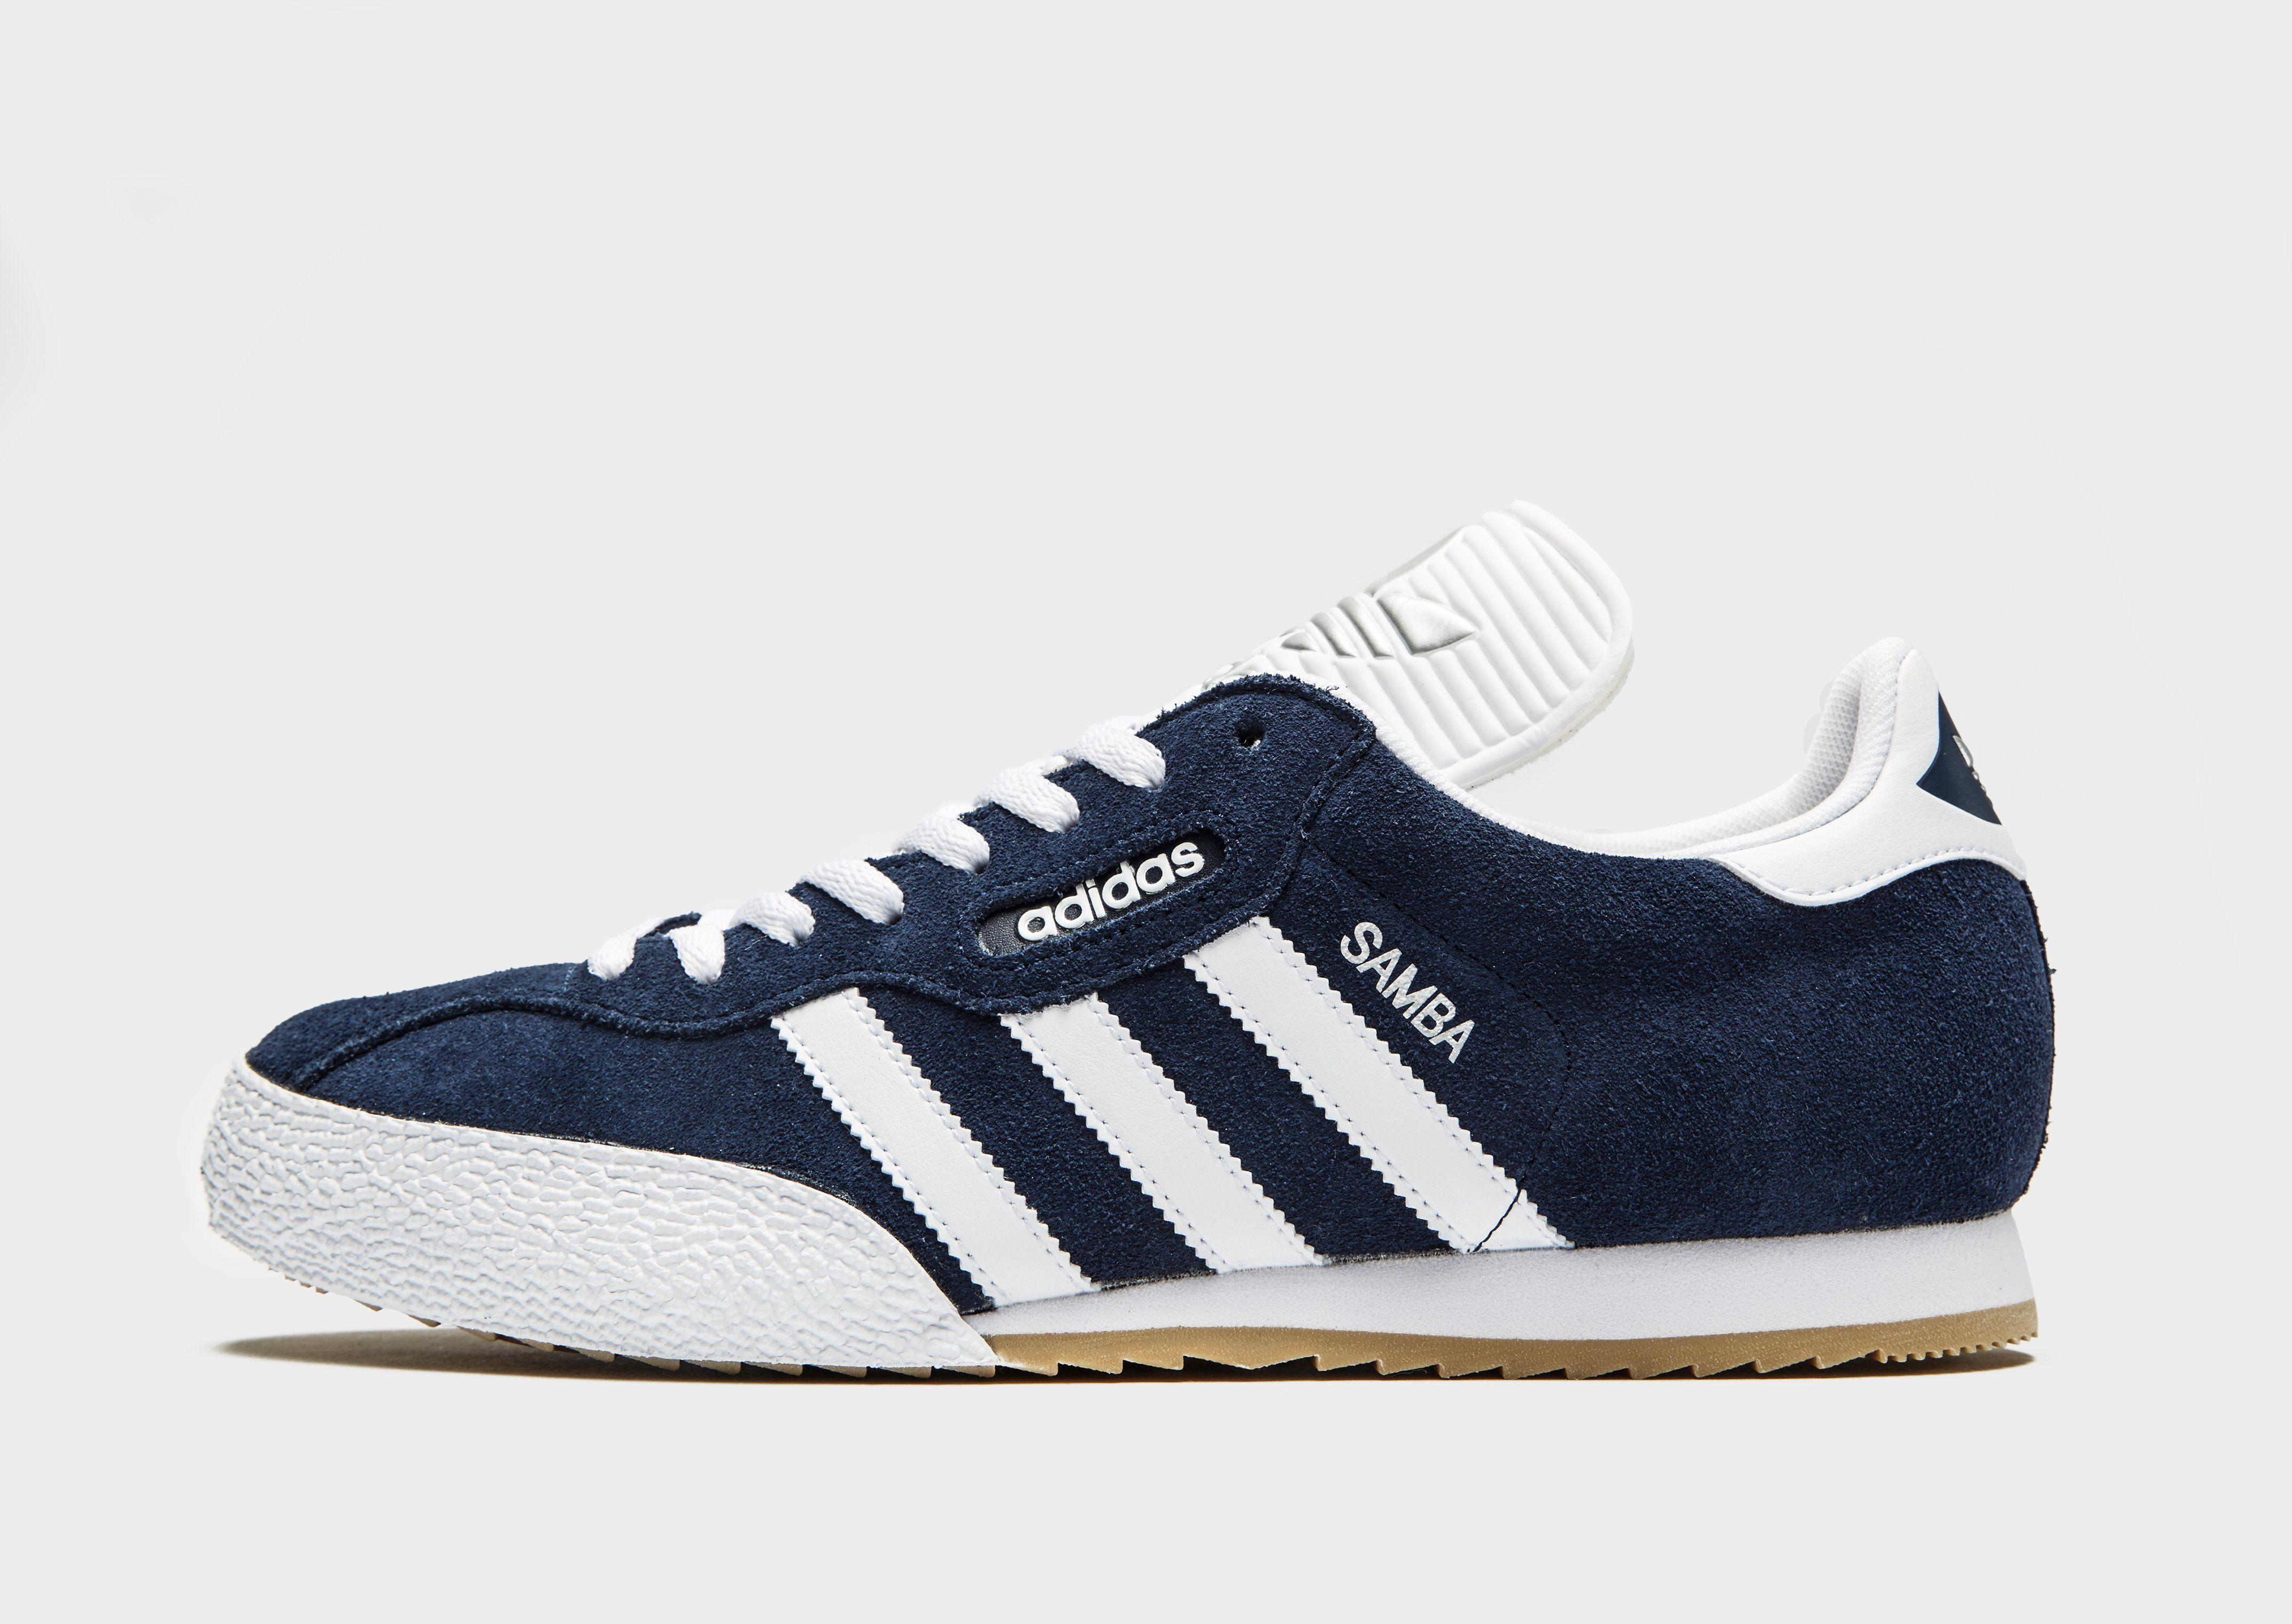 sale retailer 61156 54284 adidas Originals Samba Super Miehet   JD Sports